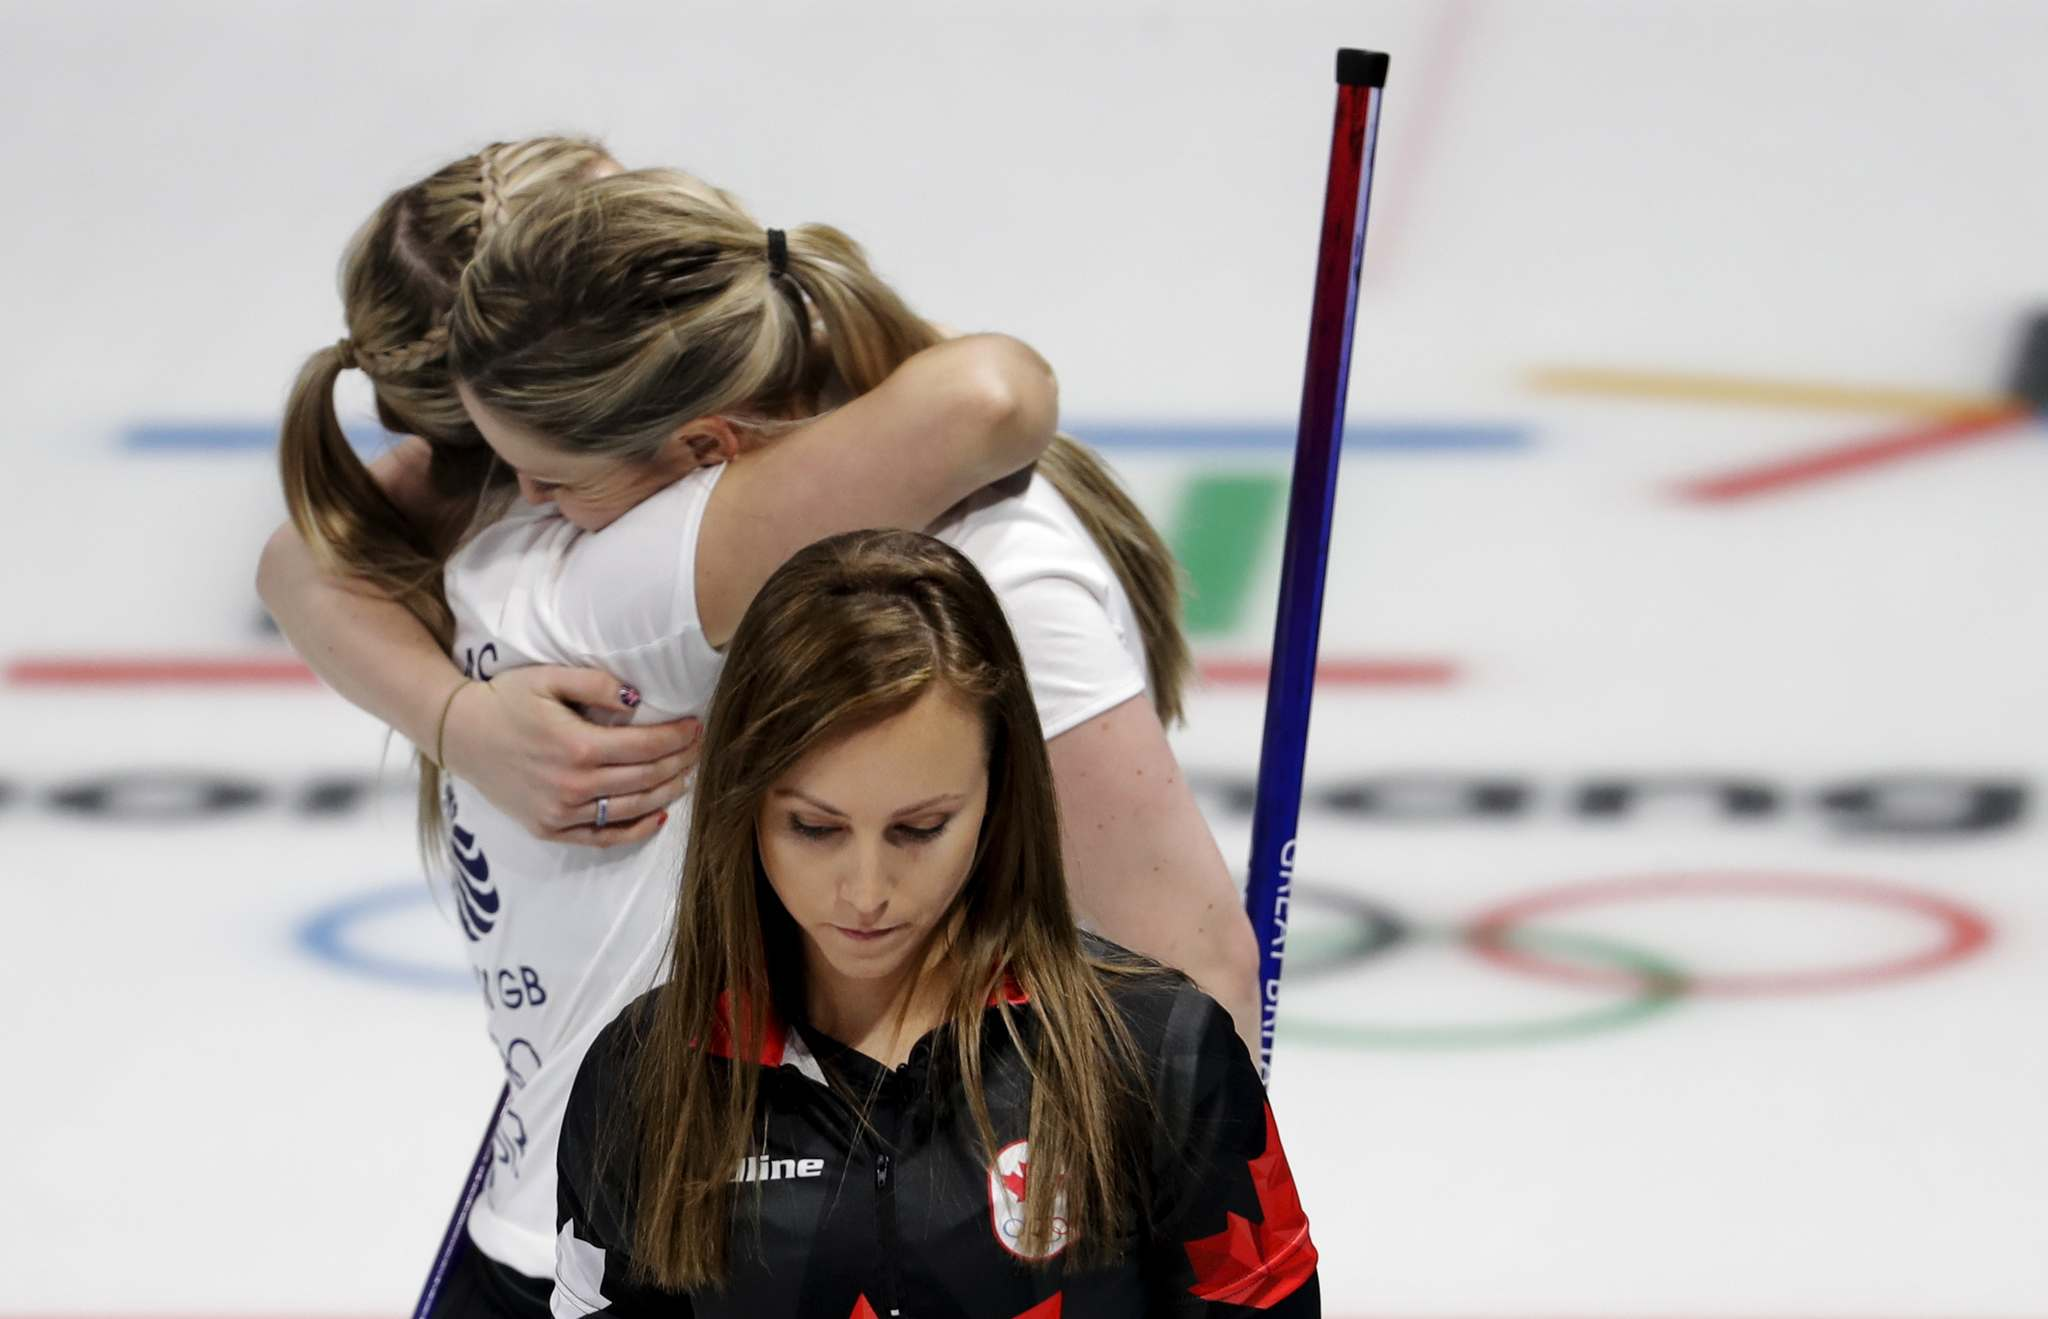 AP Photo/Natacha Pisarenko</p><p>Canada's skip Rachel Homan, centre, leaves the ice as Britain's Lauren Gray and Vicki Adams celebrate winning their curling match at the 2018 Winter Olympics in Gangneung, South Korea, Wednesday. Homan's is the first Canadian curling team to not win an olympic medal.</p>